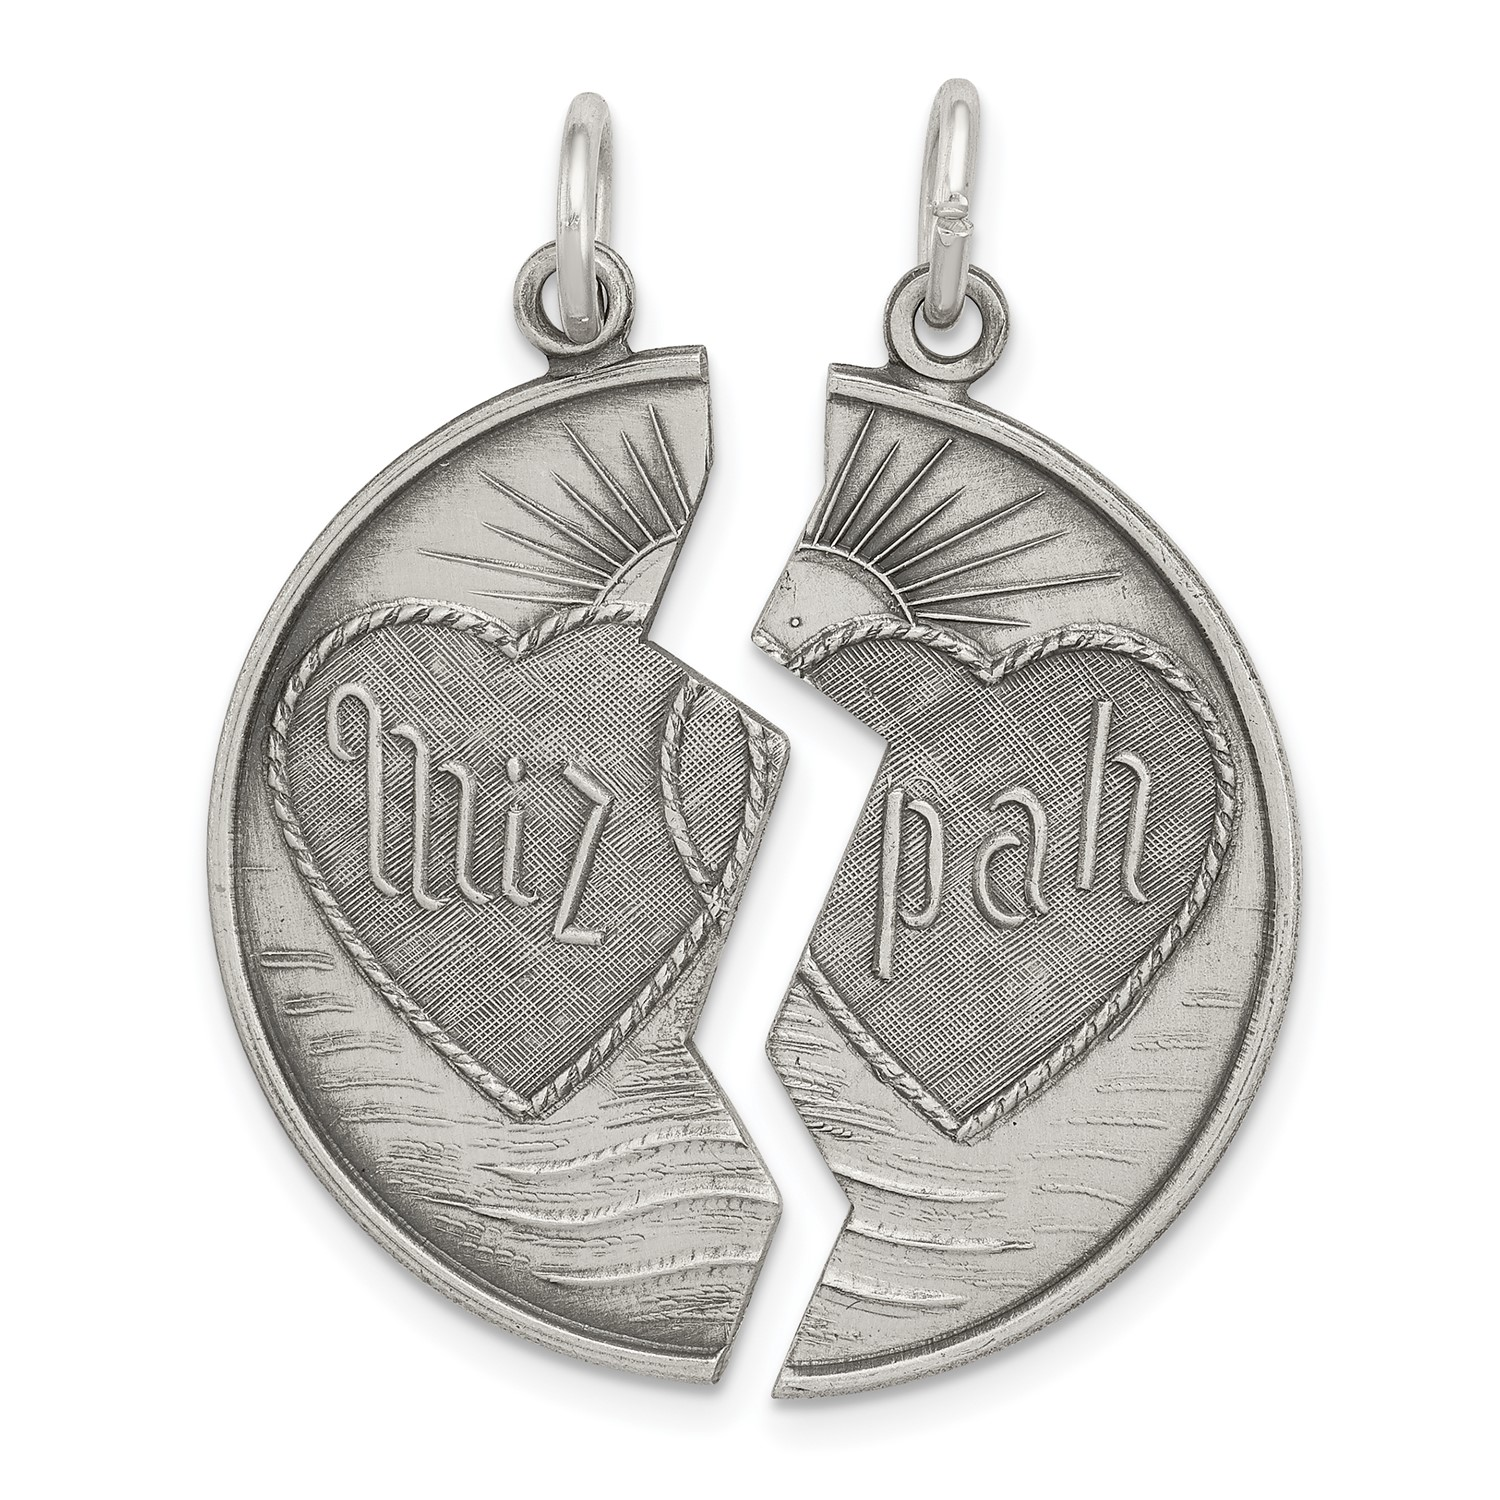 eaa64a70c42 Sterling Silver Antiqued Mizpah Charm (1.2in x 0.6in)